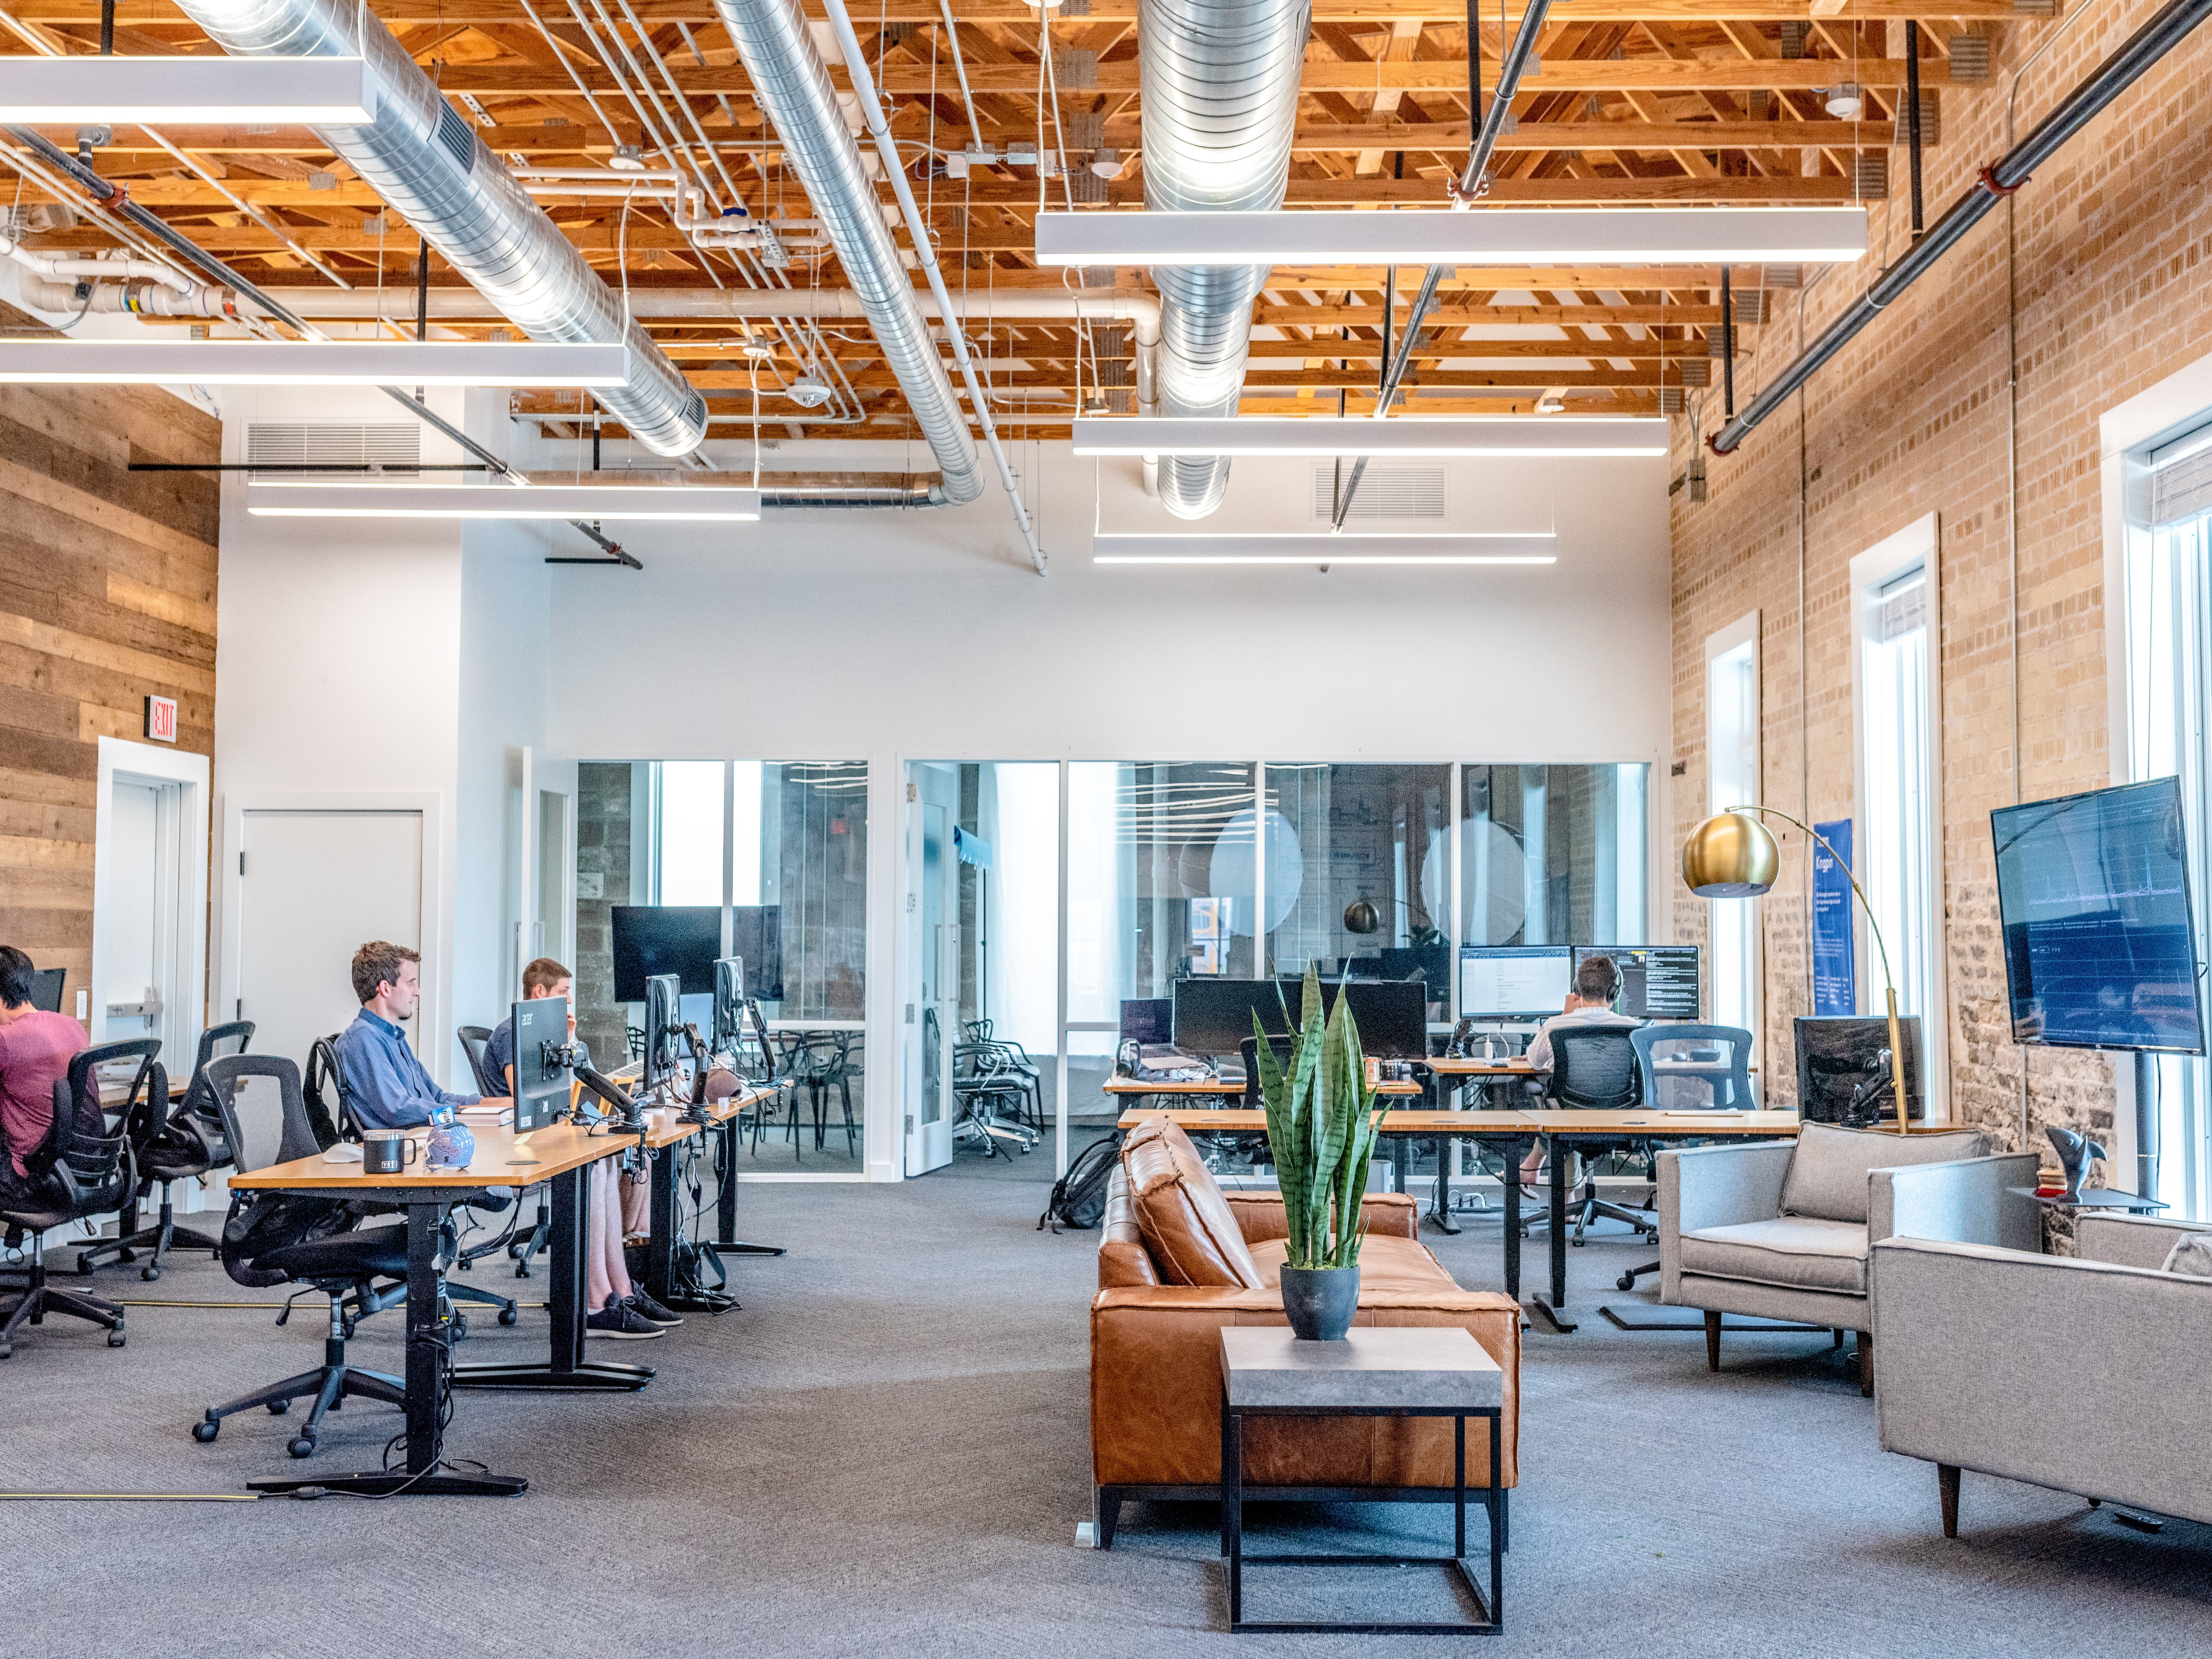 Should I get a co-working space or a traditional office space?